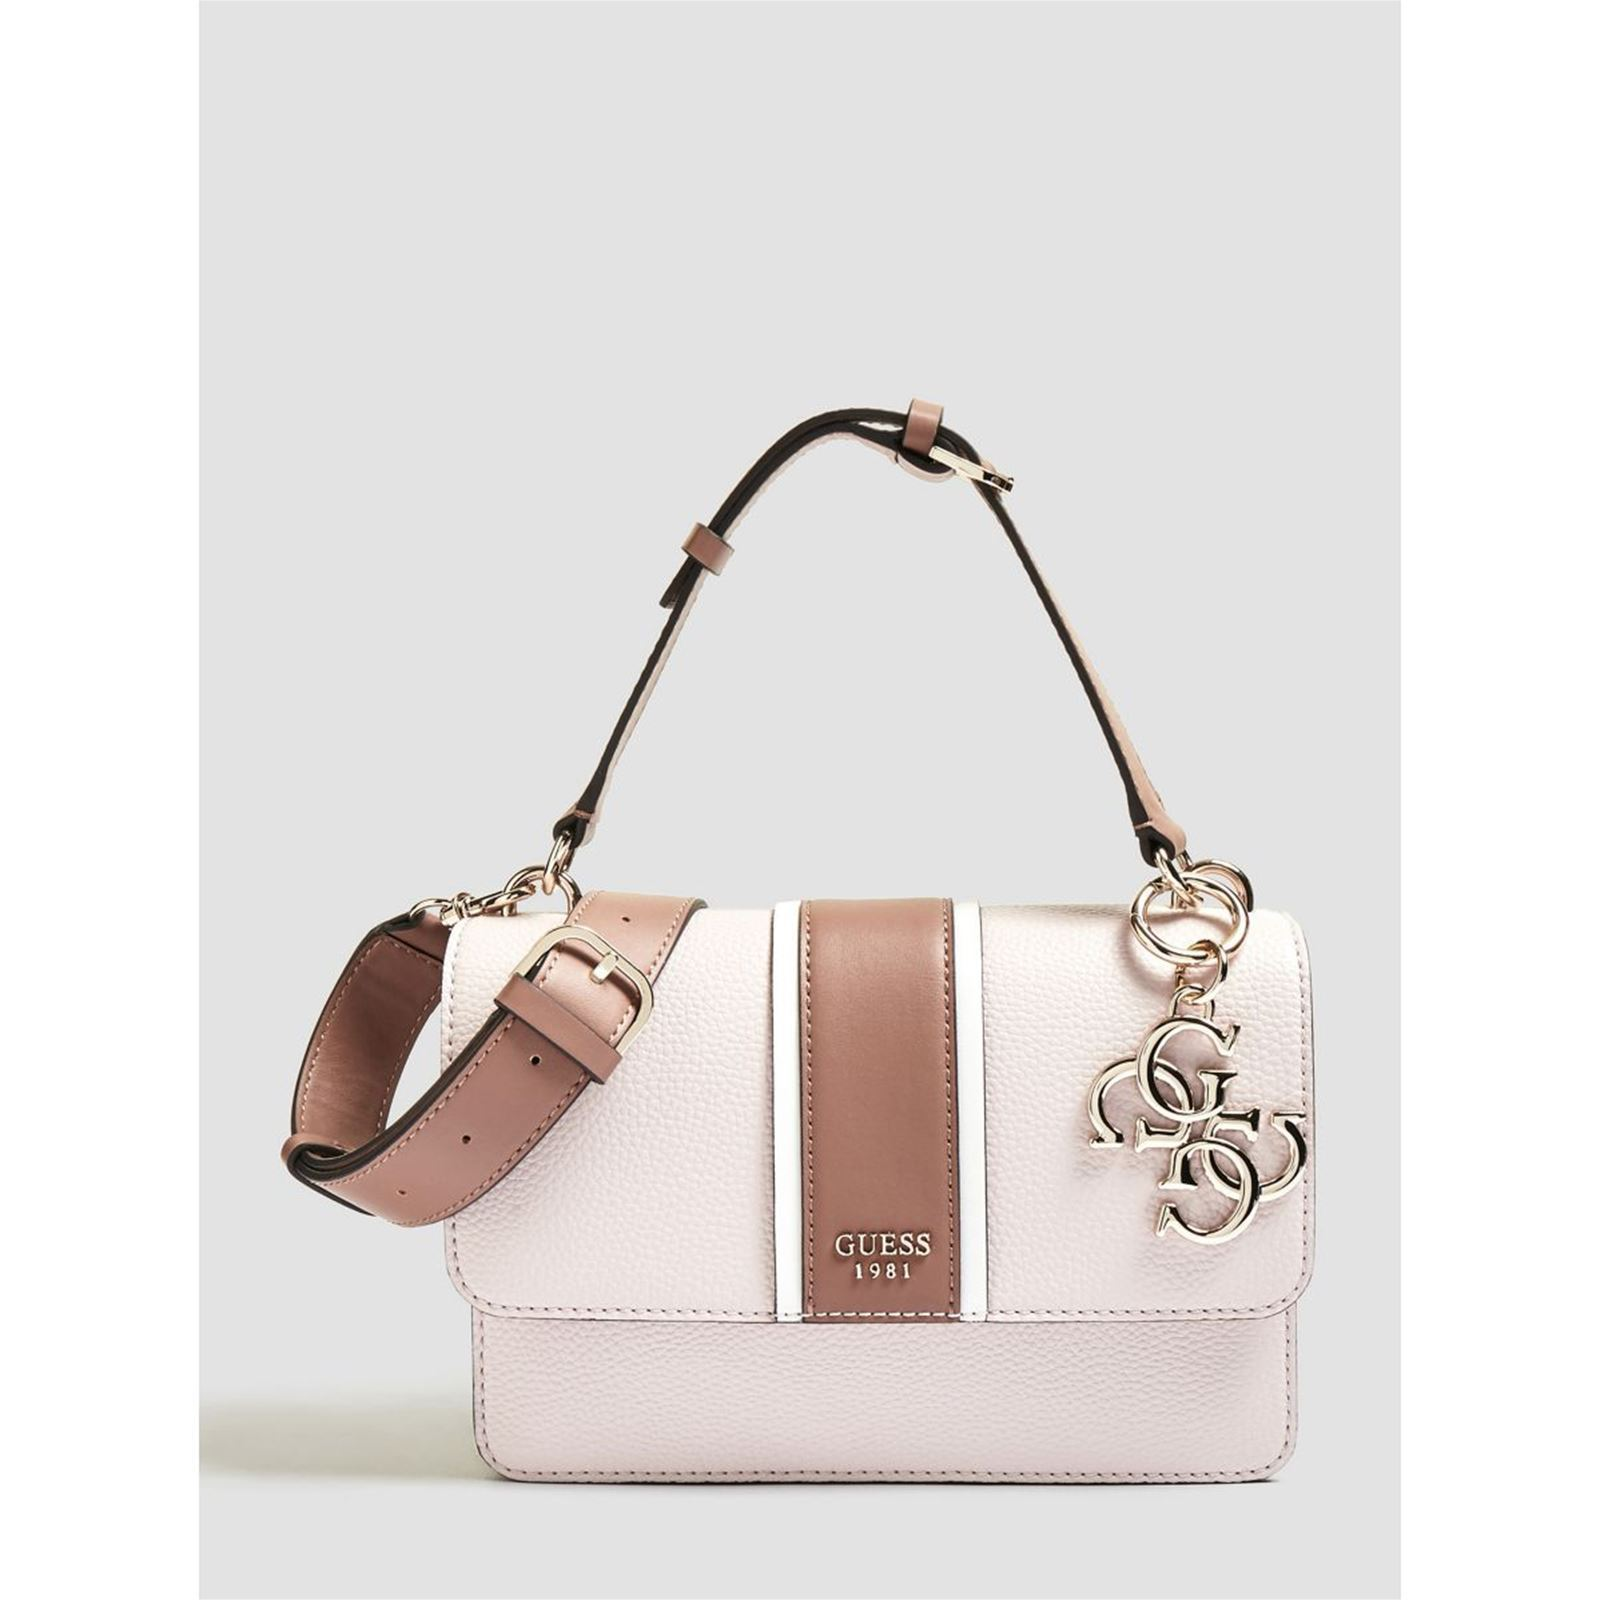 52062e732e Guess La hip - Sac à main - rose clair | BrandAlley